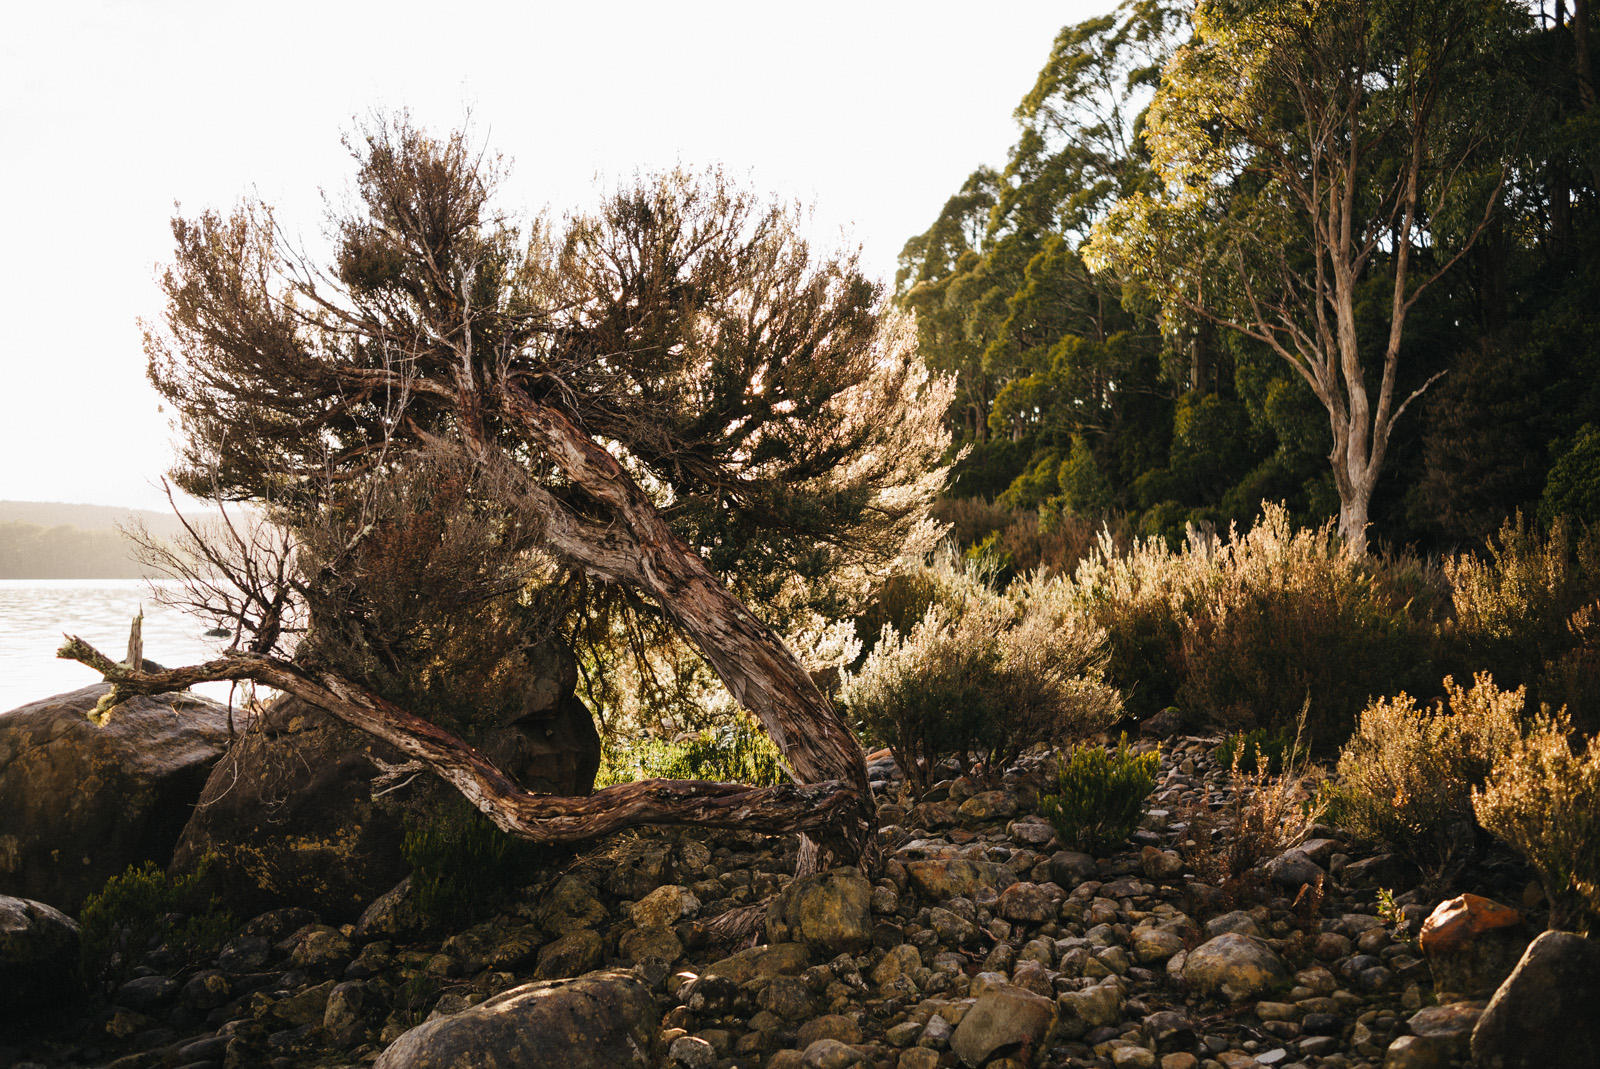 20150907_TasmaniaRoadtrip_074230-Nick-Bedford,-Photographer-Australia, Lake St Claire, Leica M Typ 240, Road Trip, Summarit 35mm, Tasmania, Travel, VSCO Film.jpg